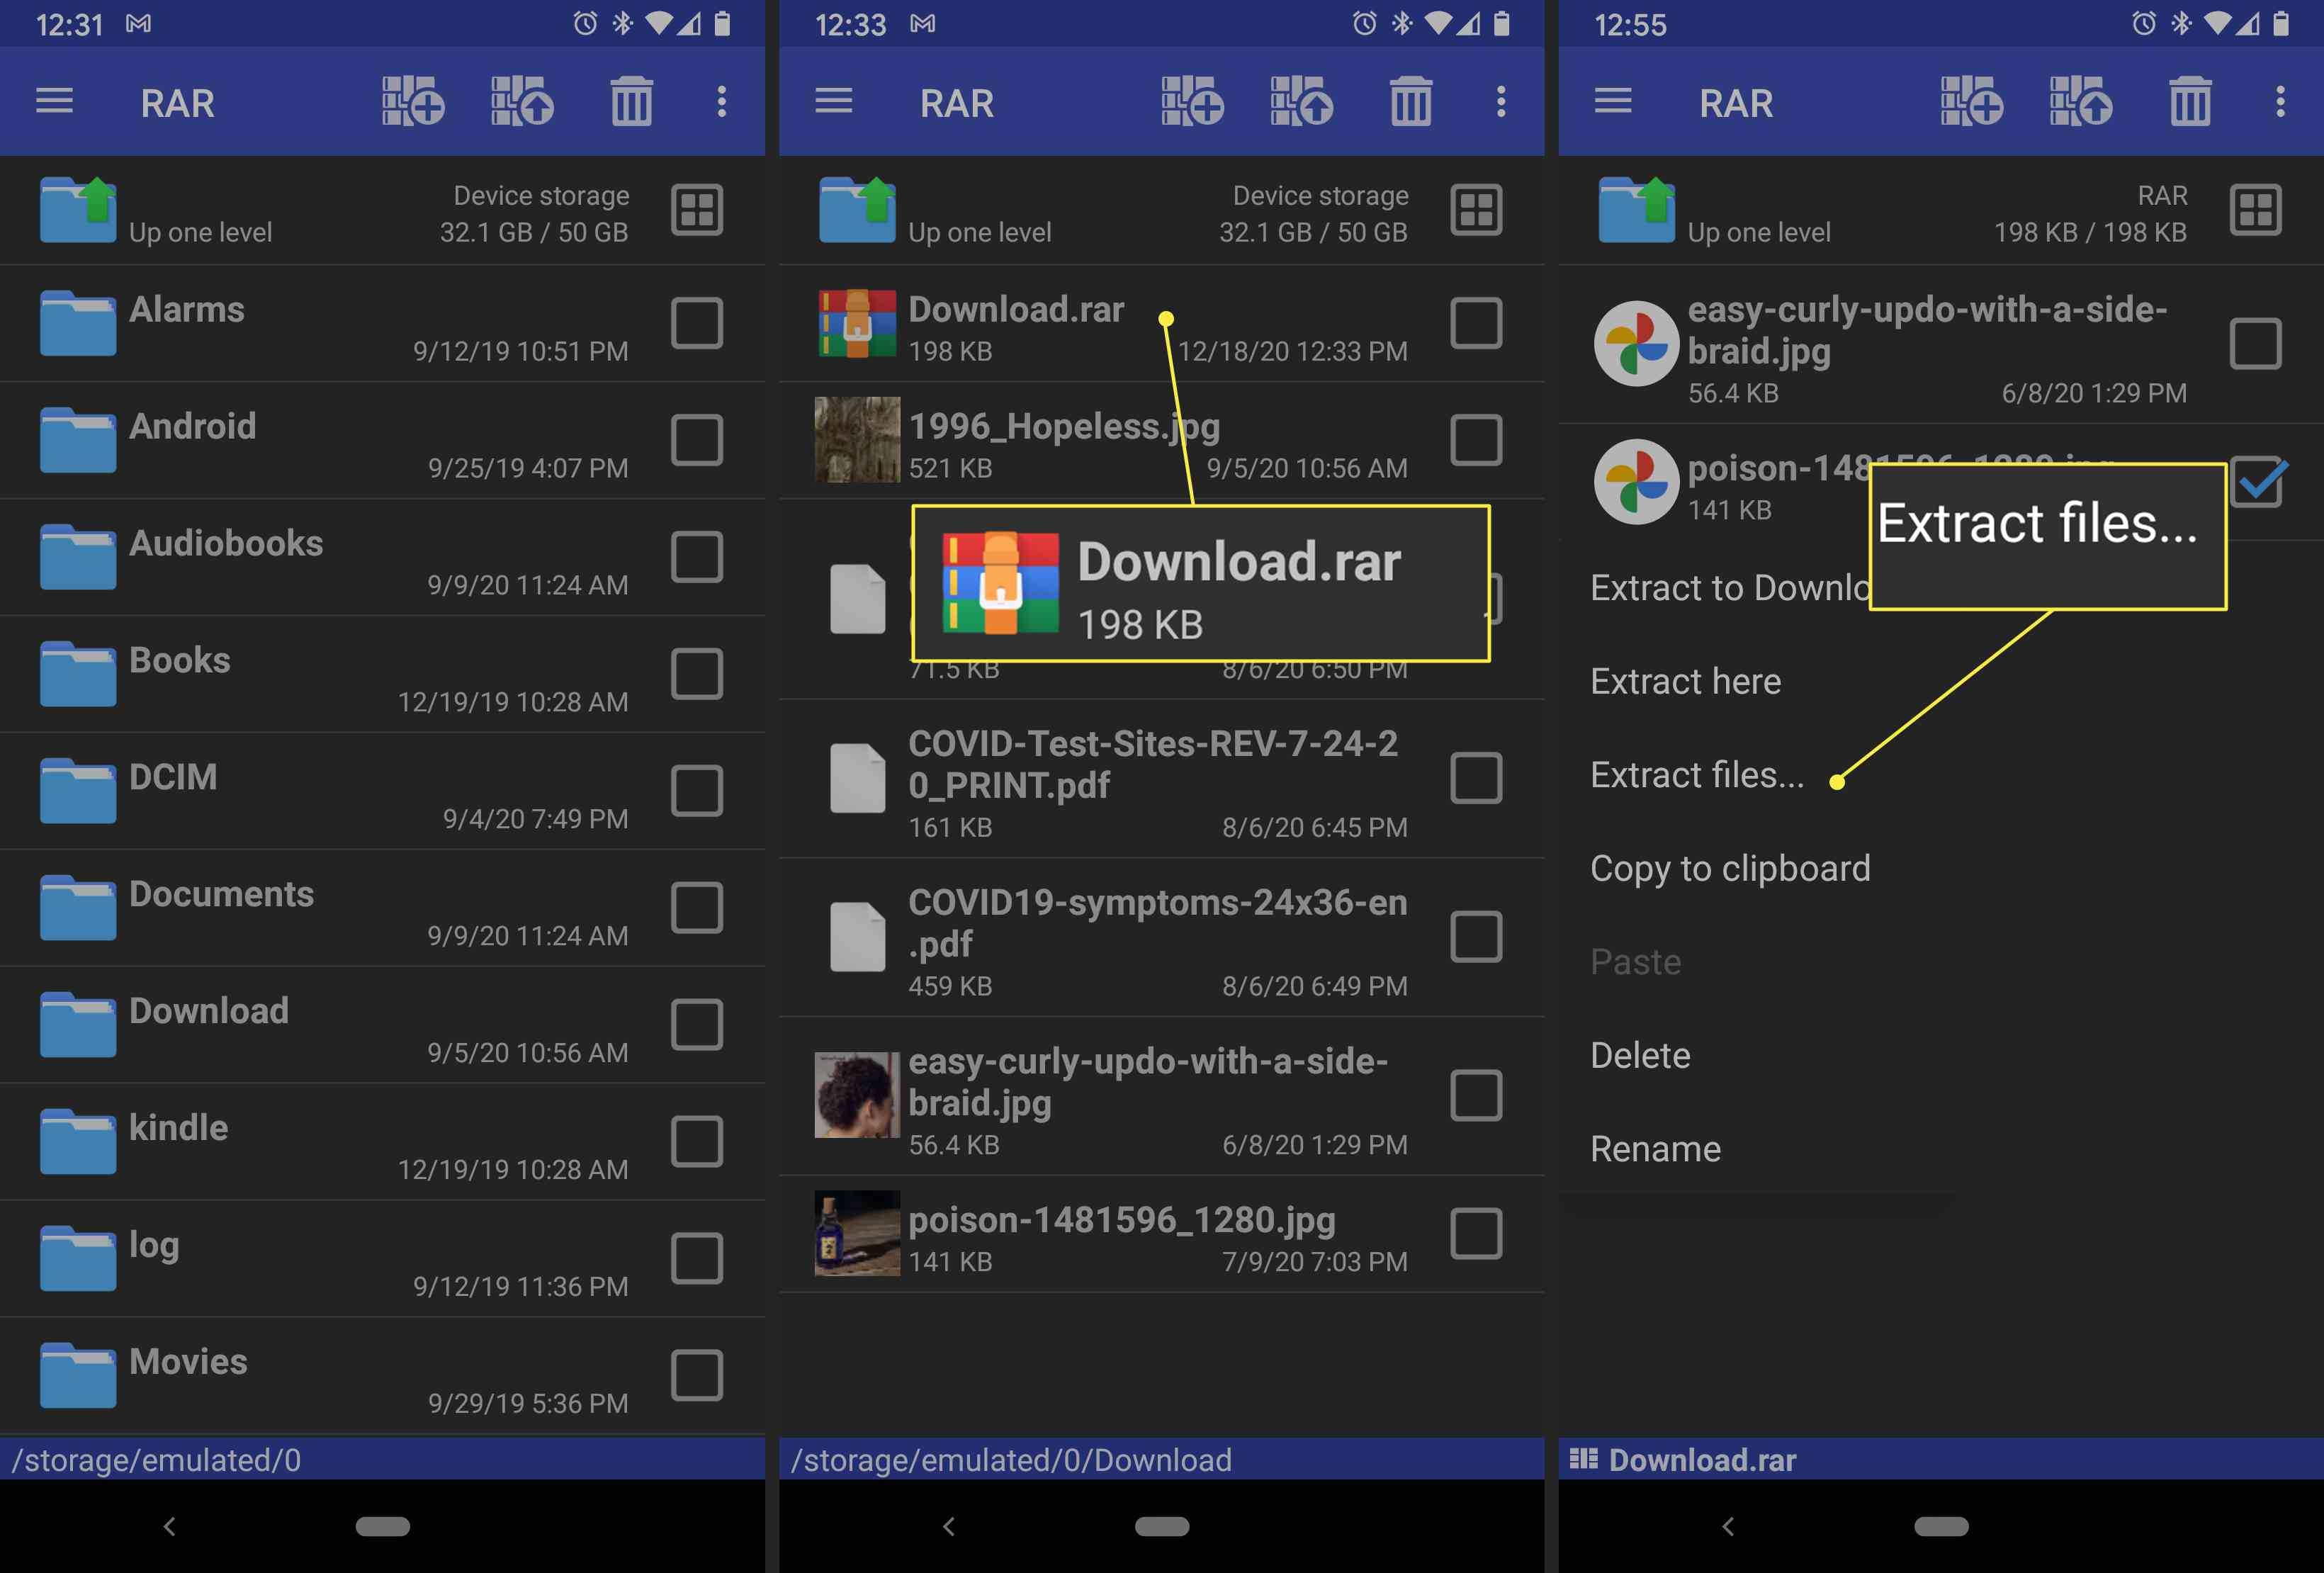 An Android user extracts a file with the RAR app